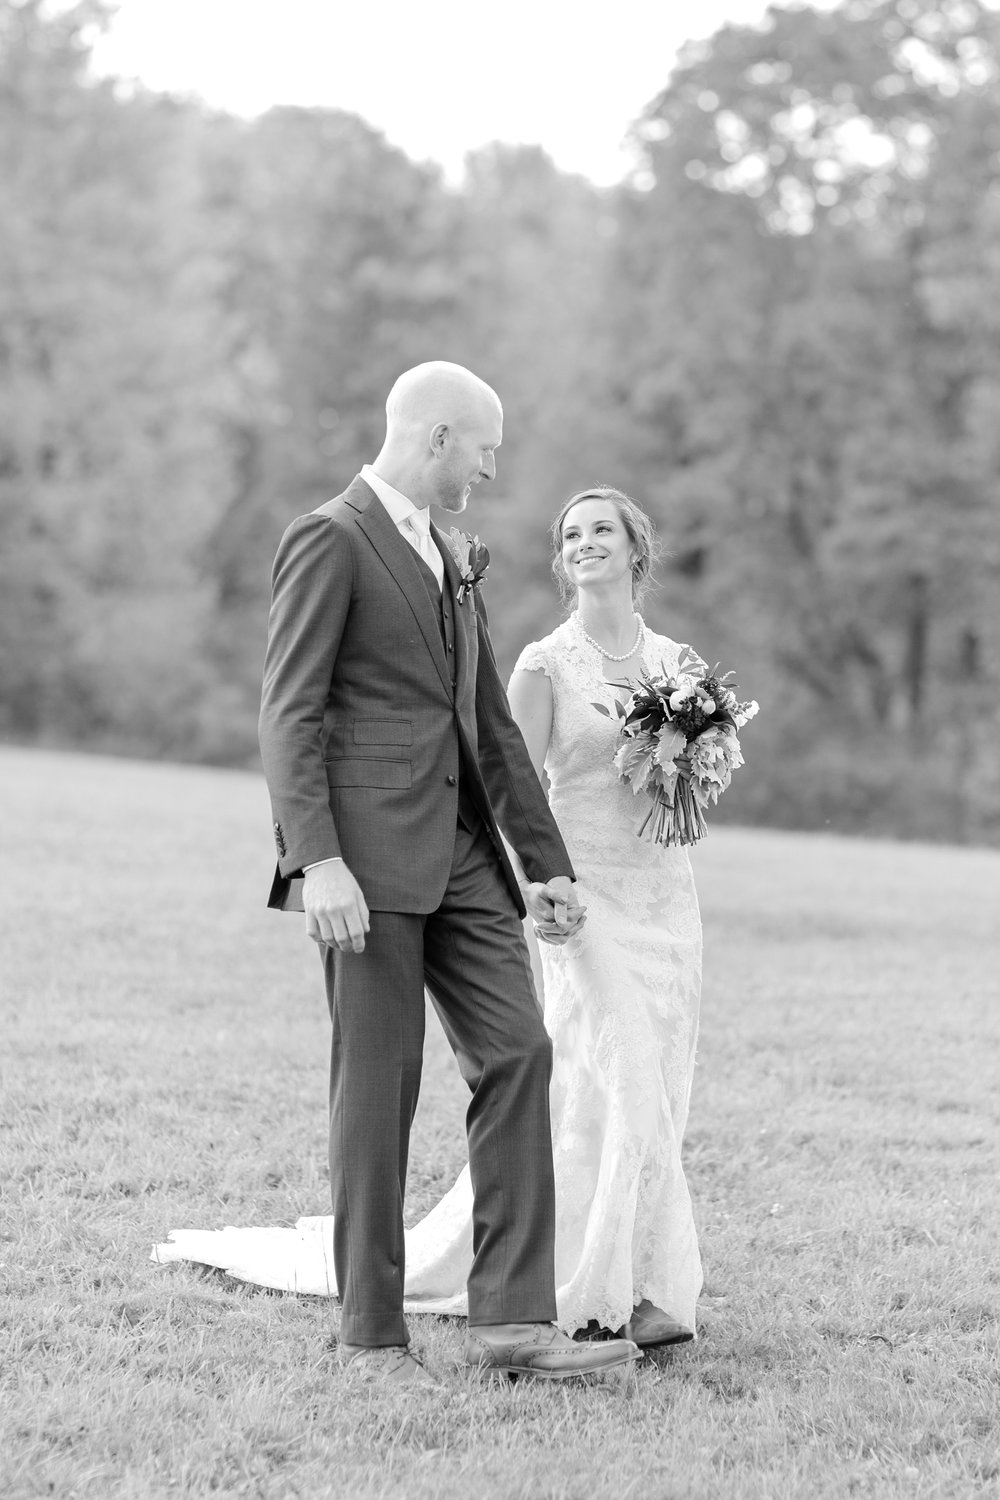 Bird 3. Bride & Groom Portraits-721_anna grace photography baltimore maryland wedding photographer chanteclaire wedding photo.jpg